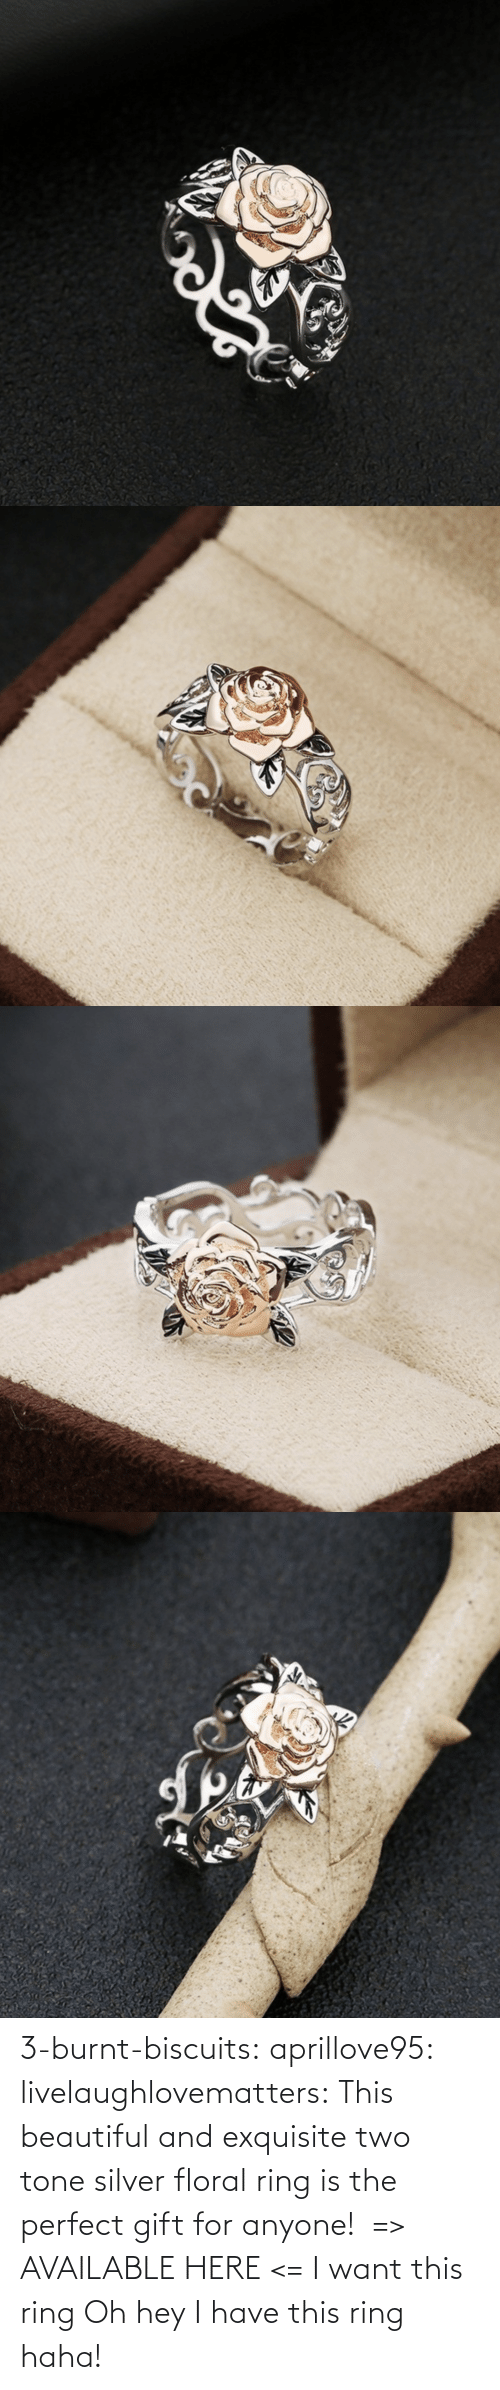 The Perfect: 3-burnt-biscuits: aprillove95:  livelaughlovematters:  This beautiful and exquisite two tone silver floral ring is the perfect gift for anyone!  => AVAILABLE HERE <=    I want this ring     Oh hey I have this ring haha!